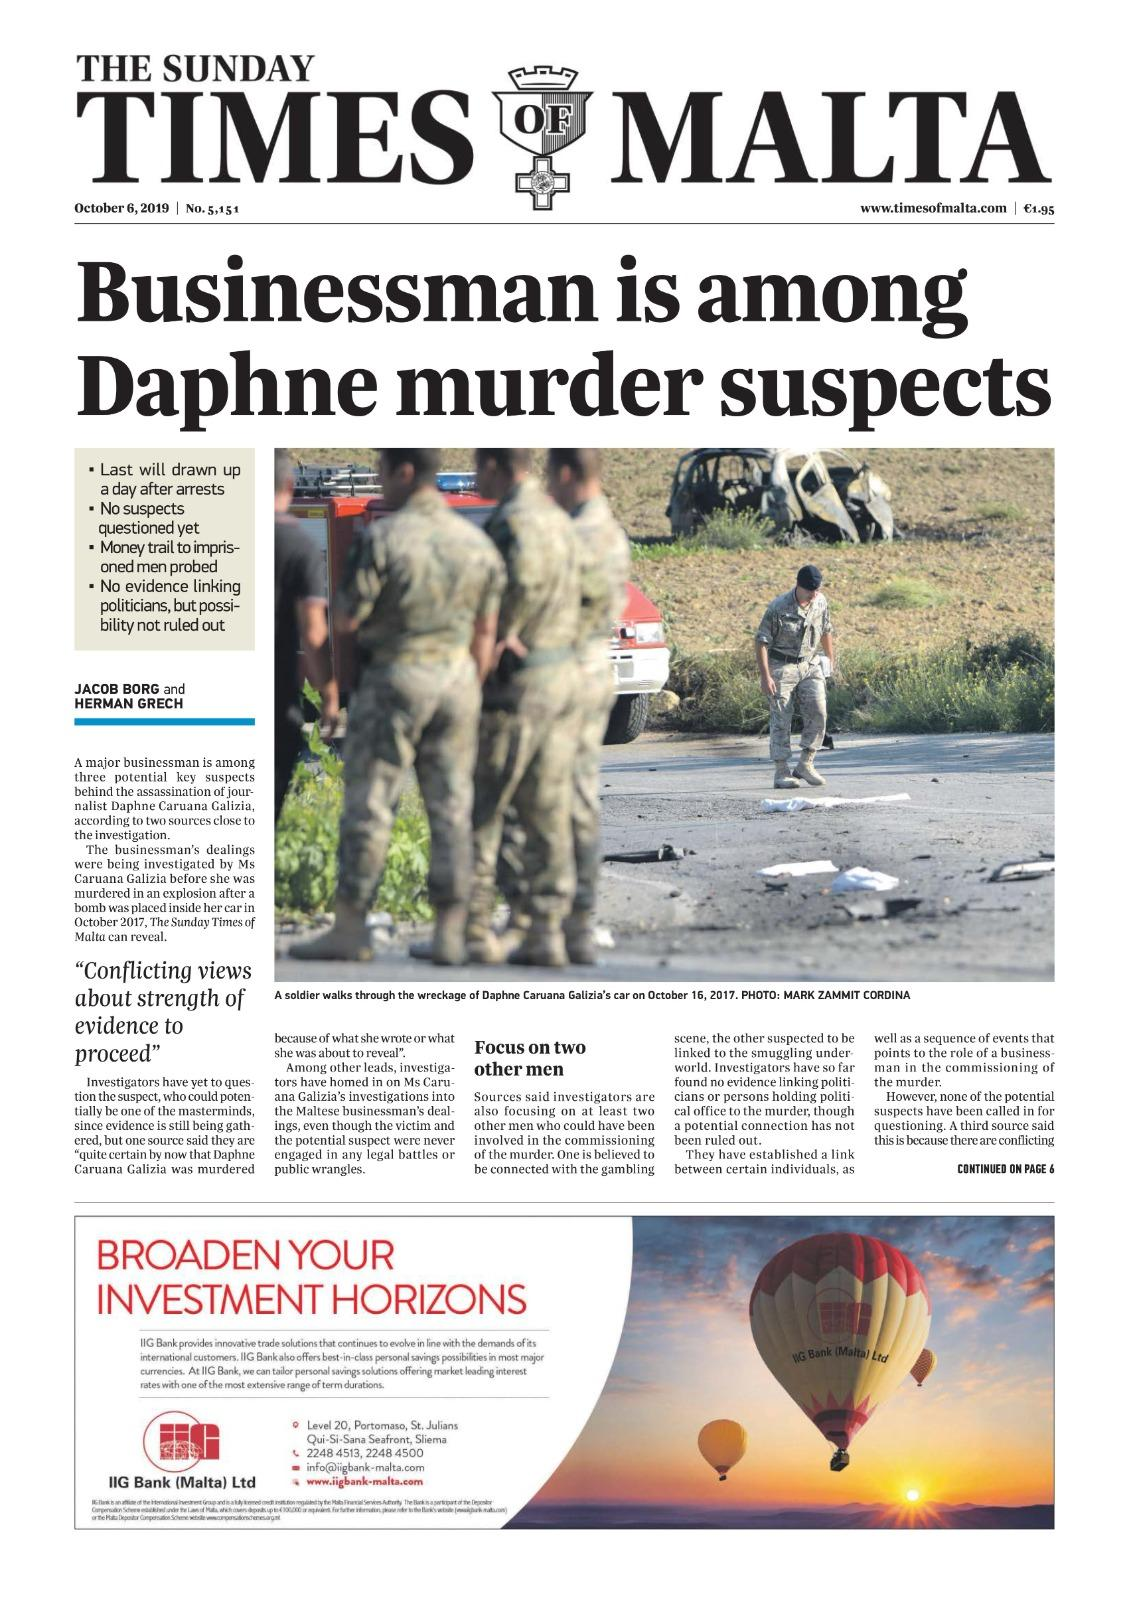 The front page of Times of Malta